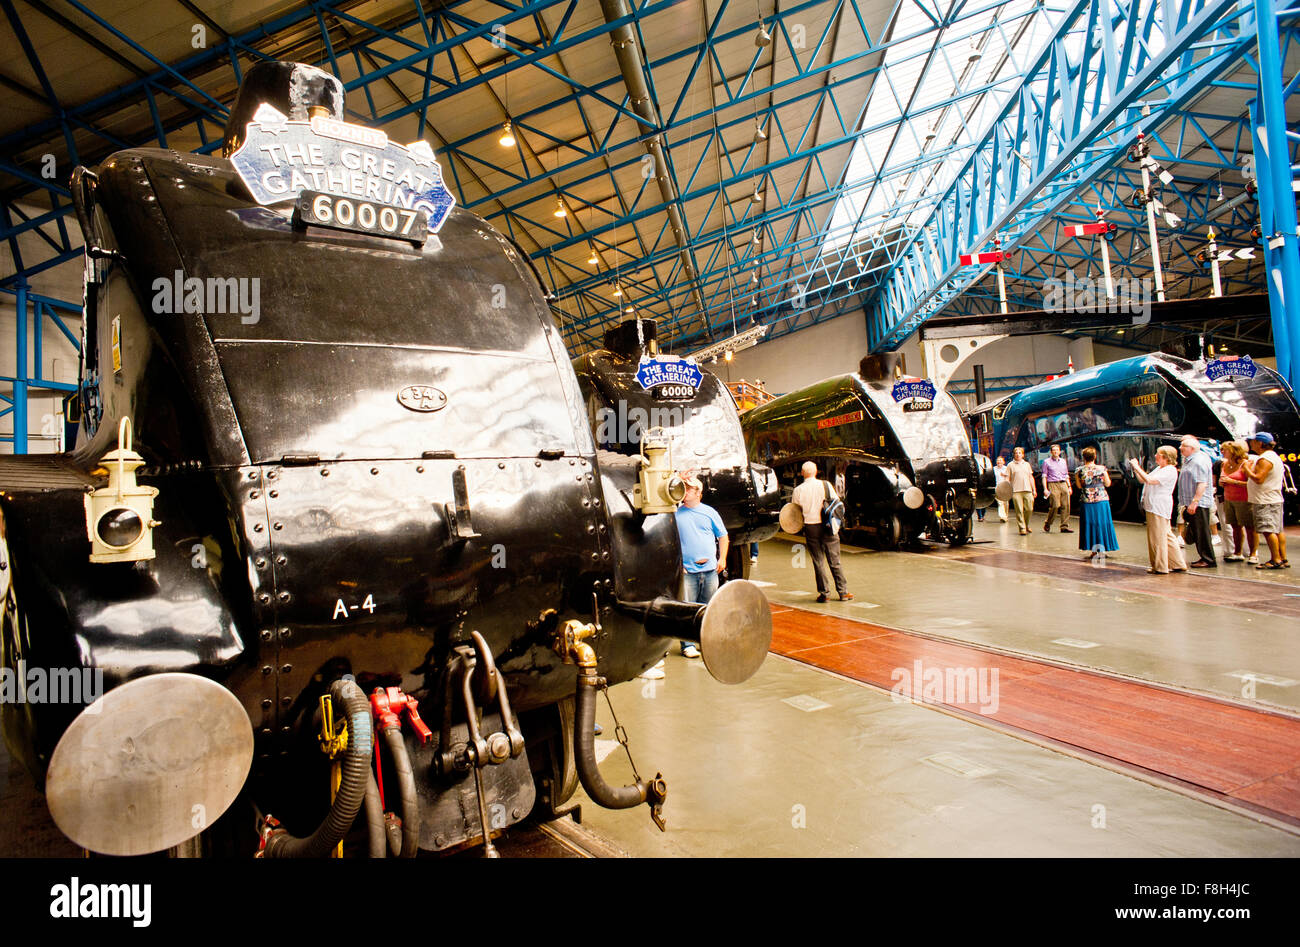 The Great Gathering of A4s at National Railway Museum York - Stock Image